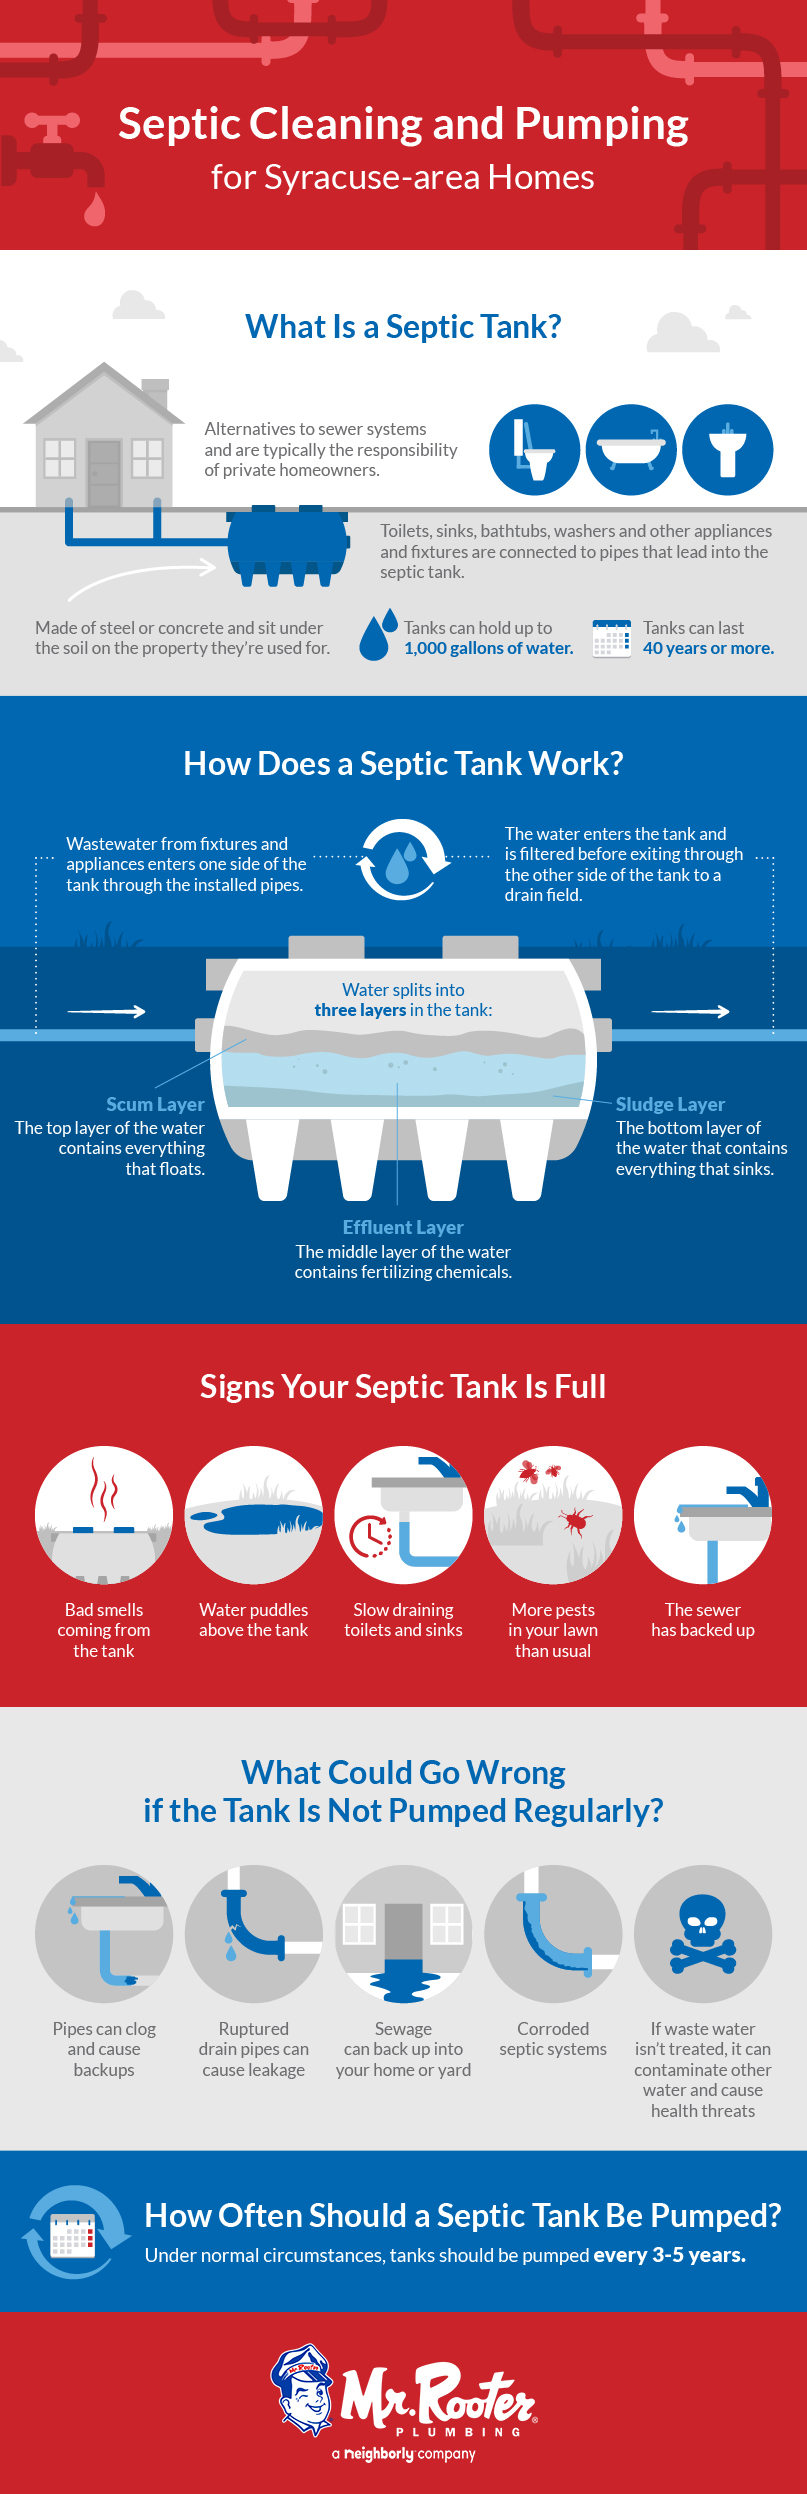 Syracuse septic cleaning and pumping for homes infographic